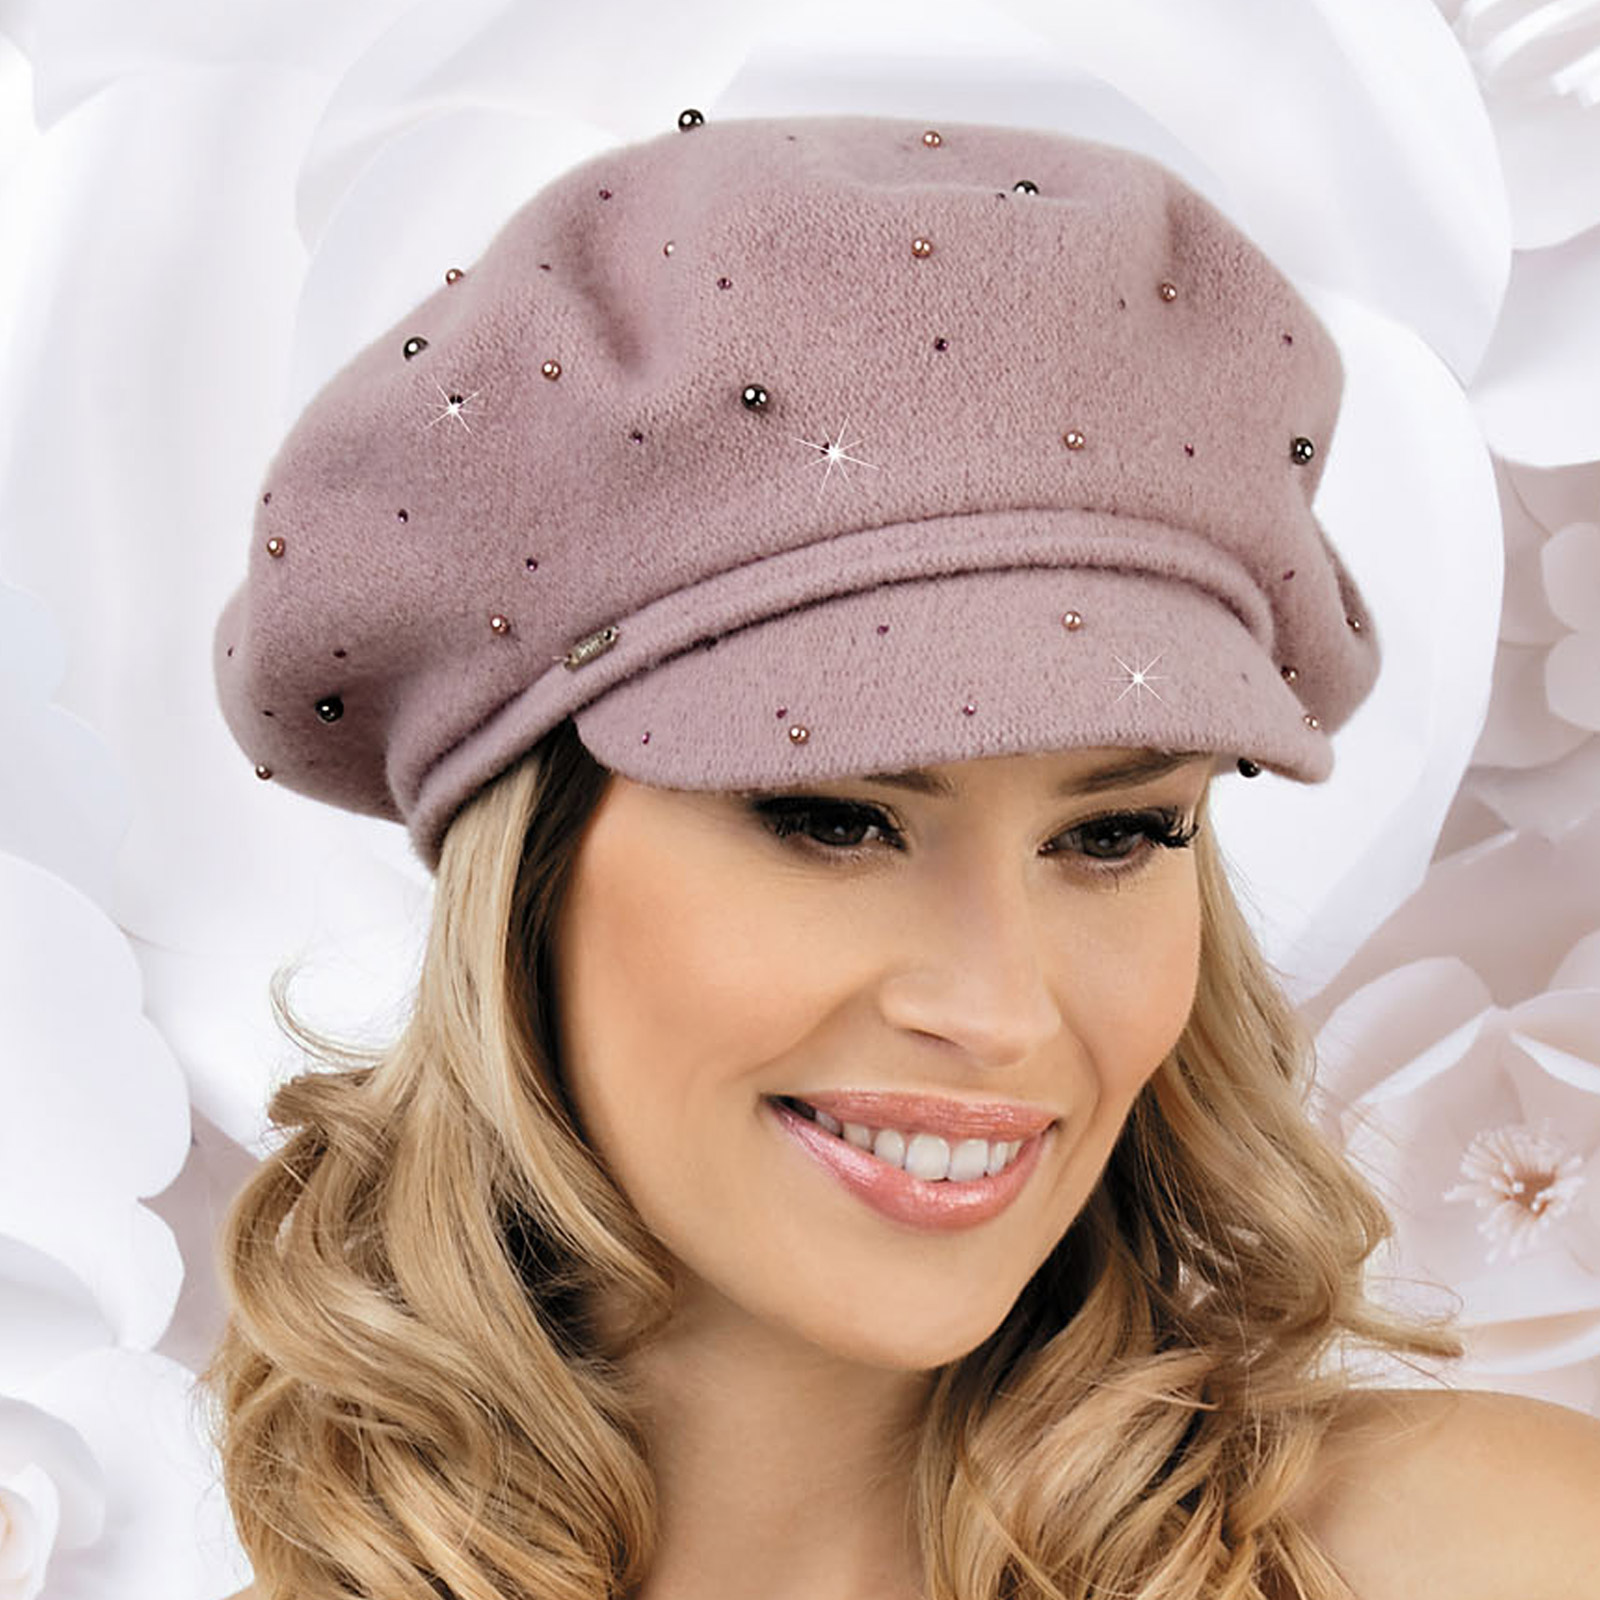 mezo beret winter hat